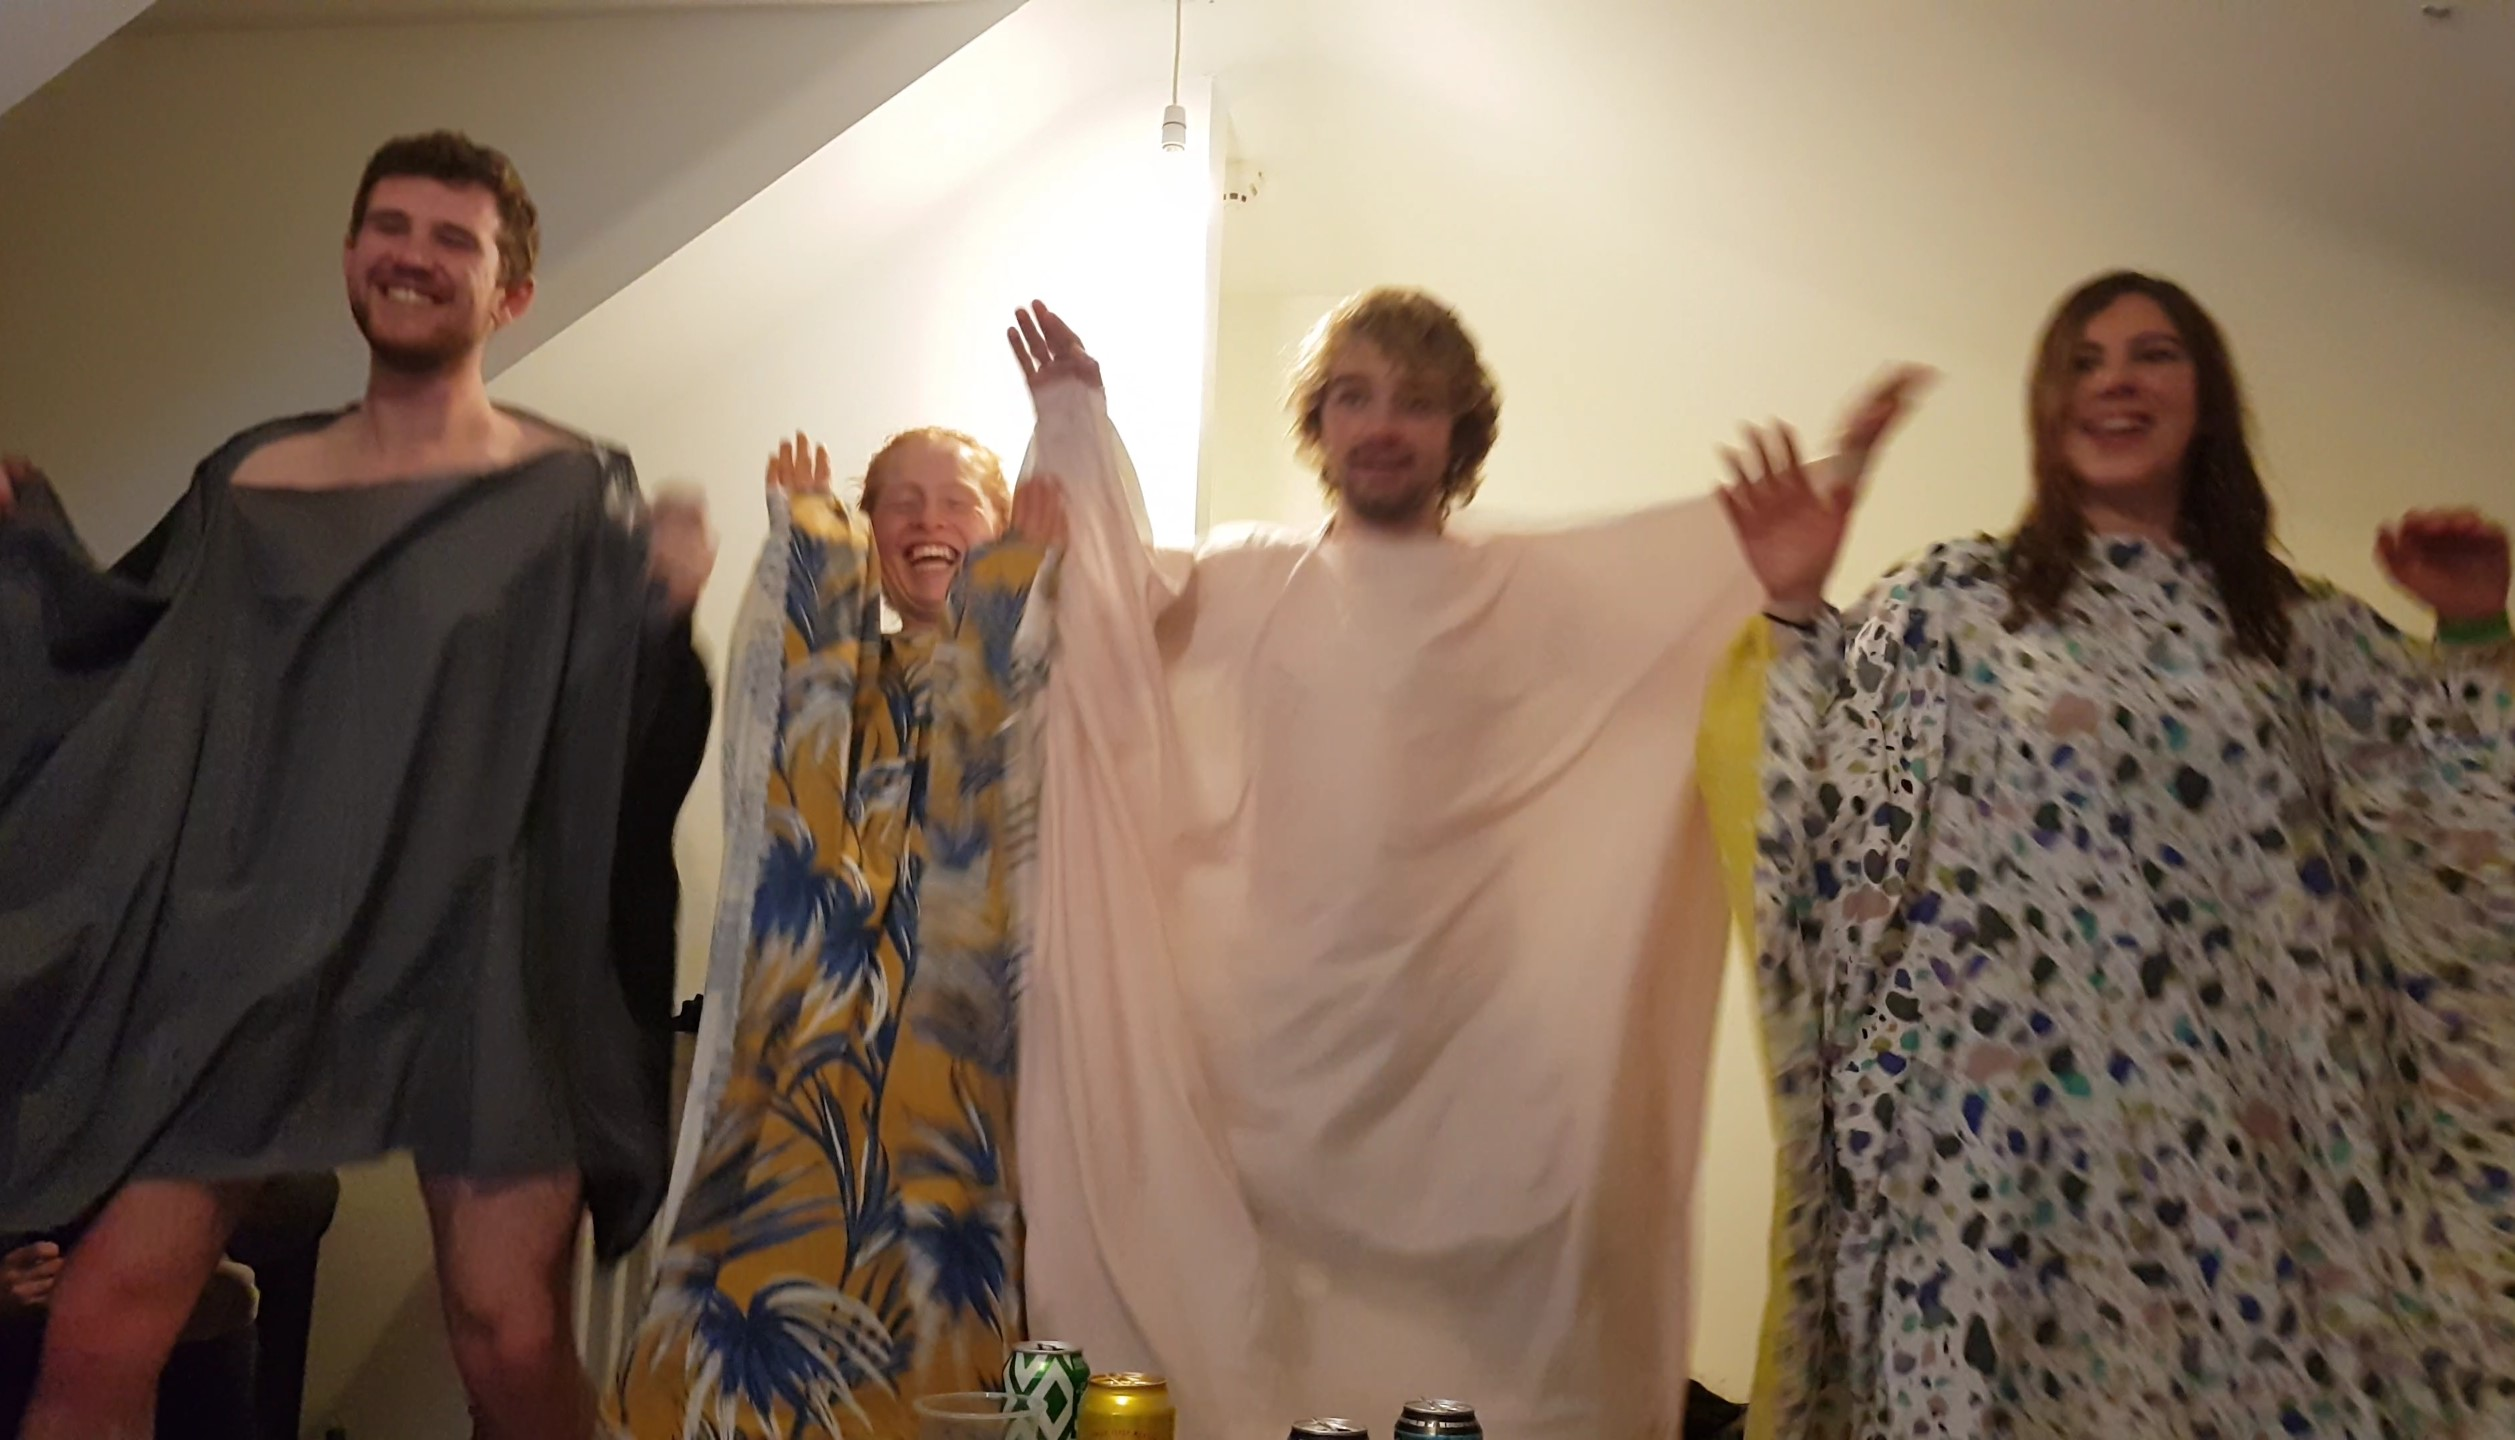 Blanket dance meme